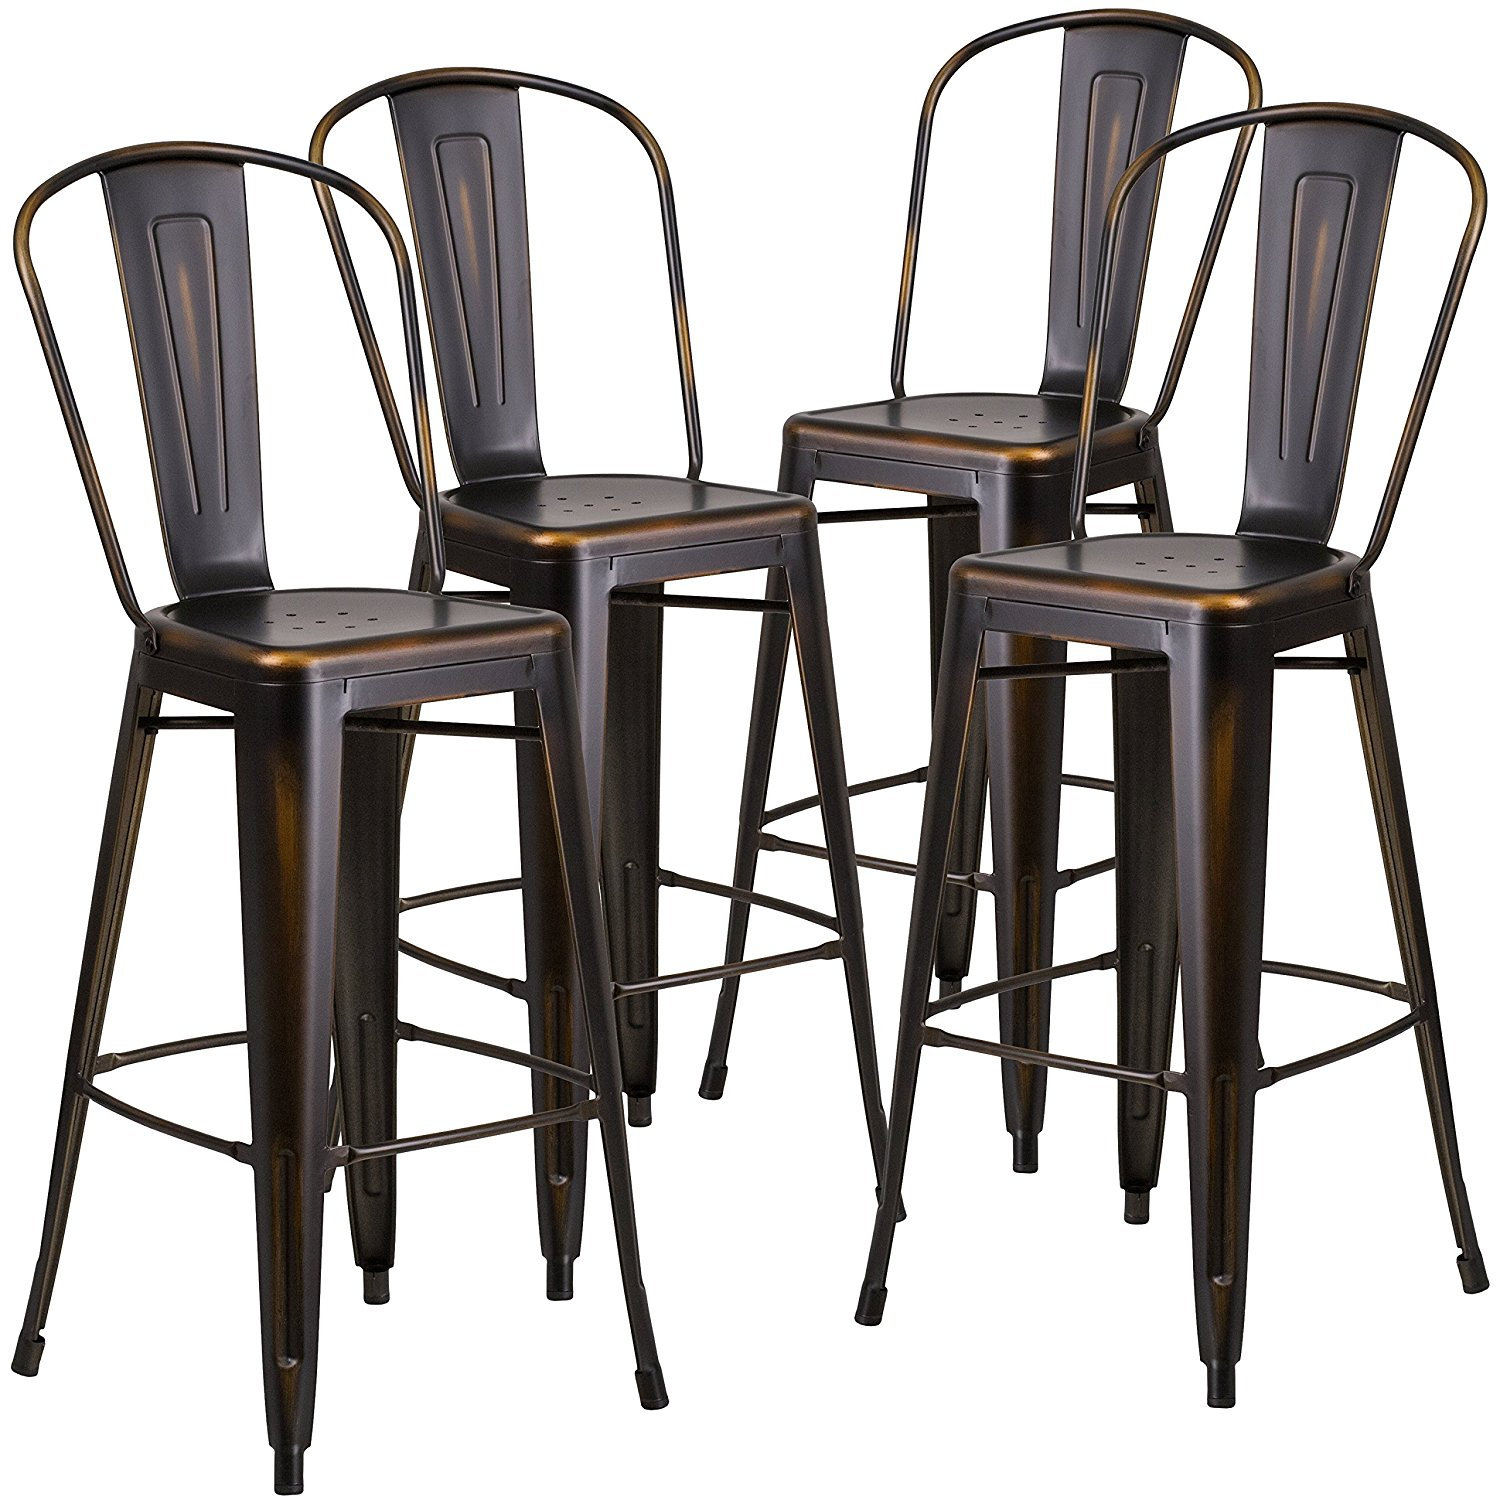 Marvelous 5012 Bistro Cafe High Back Stool Silver Metal For Rent Machost Co Dining Chair Design Ideas Machostcouk